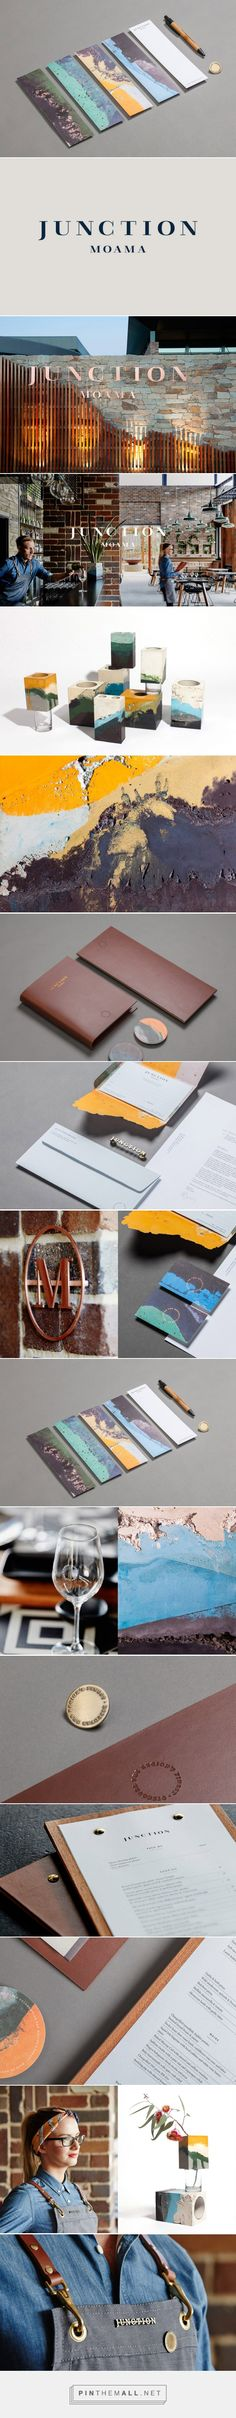 New Visual Identity for Junction Moama by Seesaw — BP&O... - a grouped images picture - Pin Them All